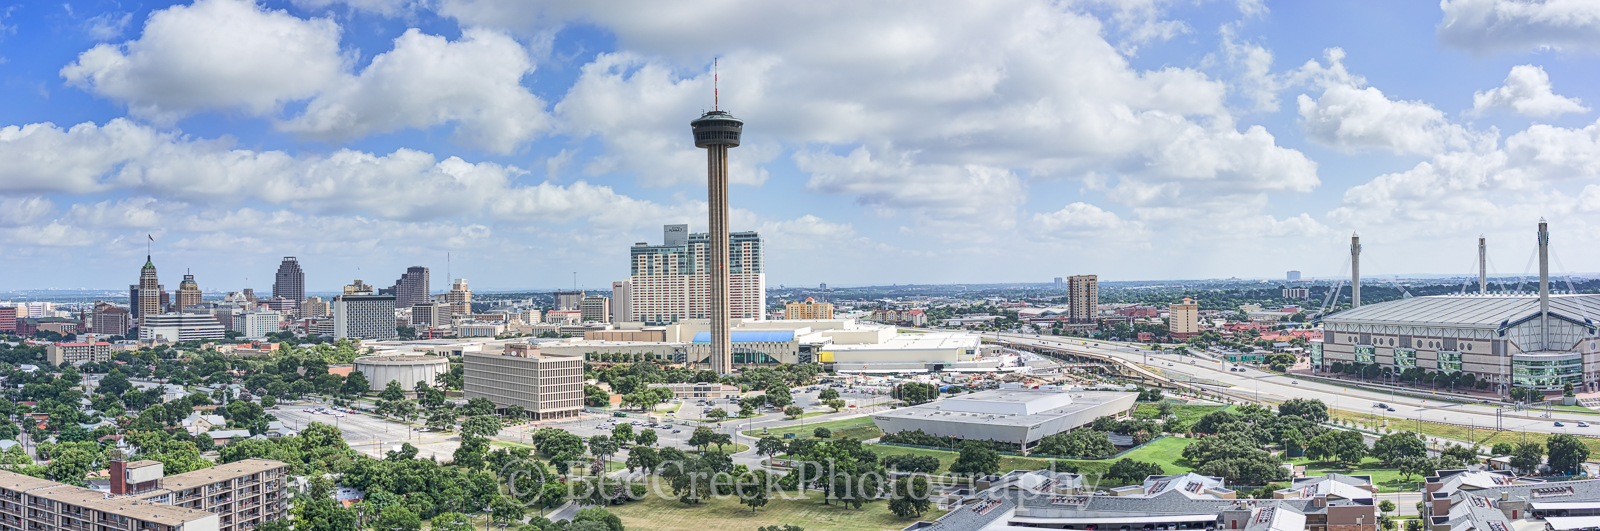 San Antonio skyline, Alamo Dome, Hemisphere, River Walk, SA, San Antonio, The Grand Hyatt, Tower Life, Tower of Americas, UT SA, Weston Center, aerial, drone, bank of america, cityscape, cityscapes, h, photo